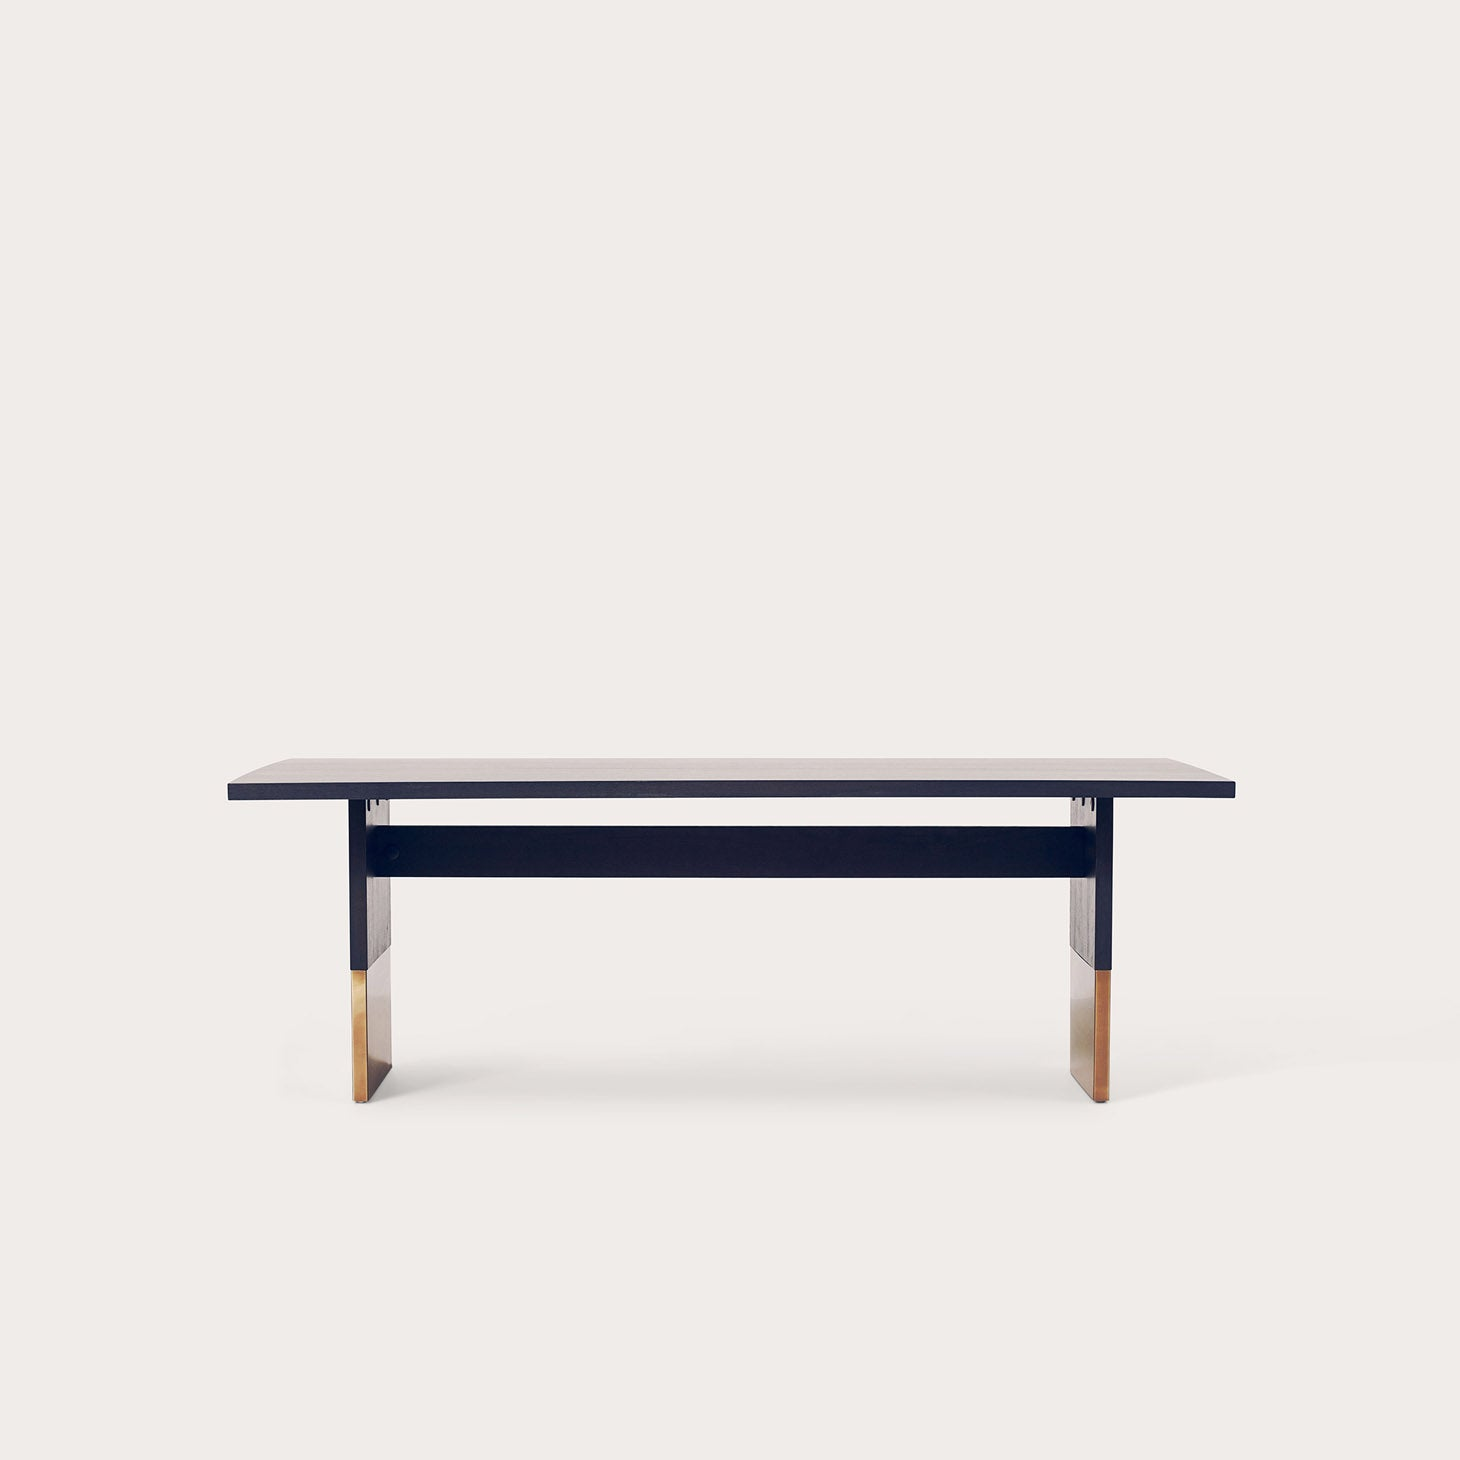 Nota Bene Tables Marlieke Van Rossum Designer Furniture Sku: 416-230-10158